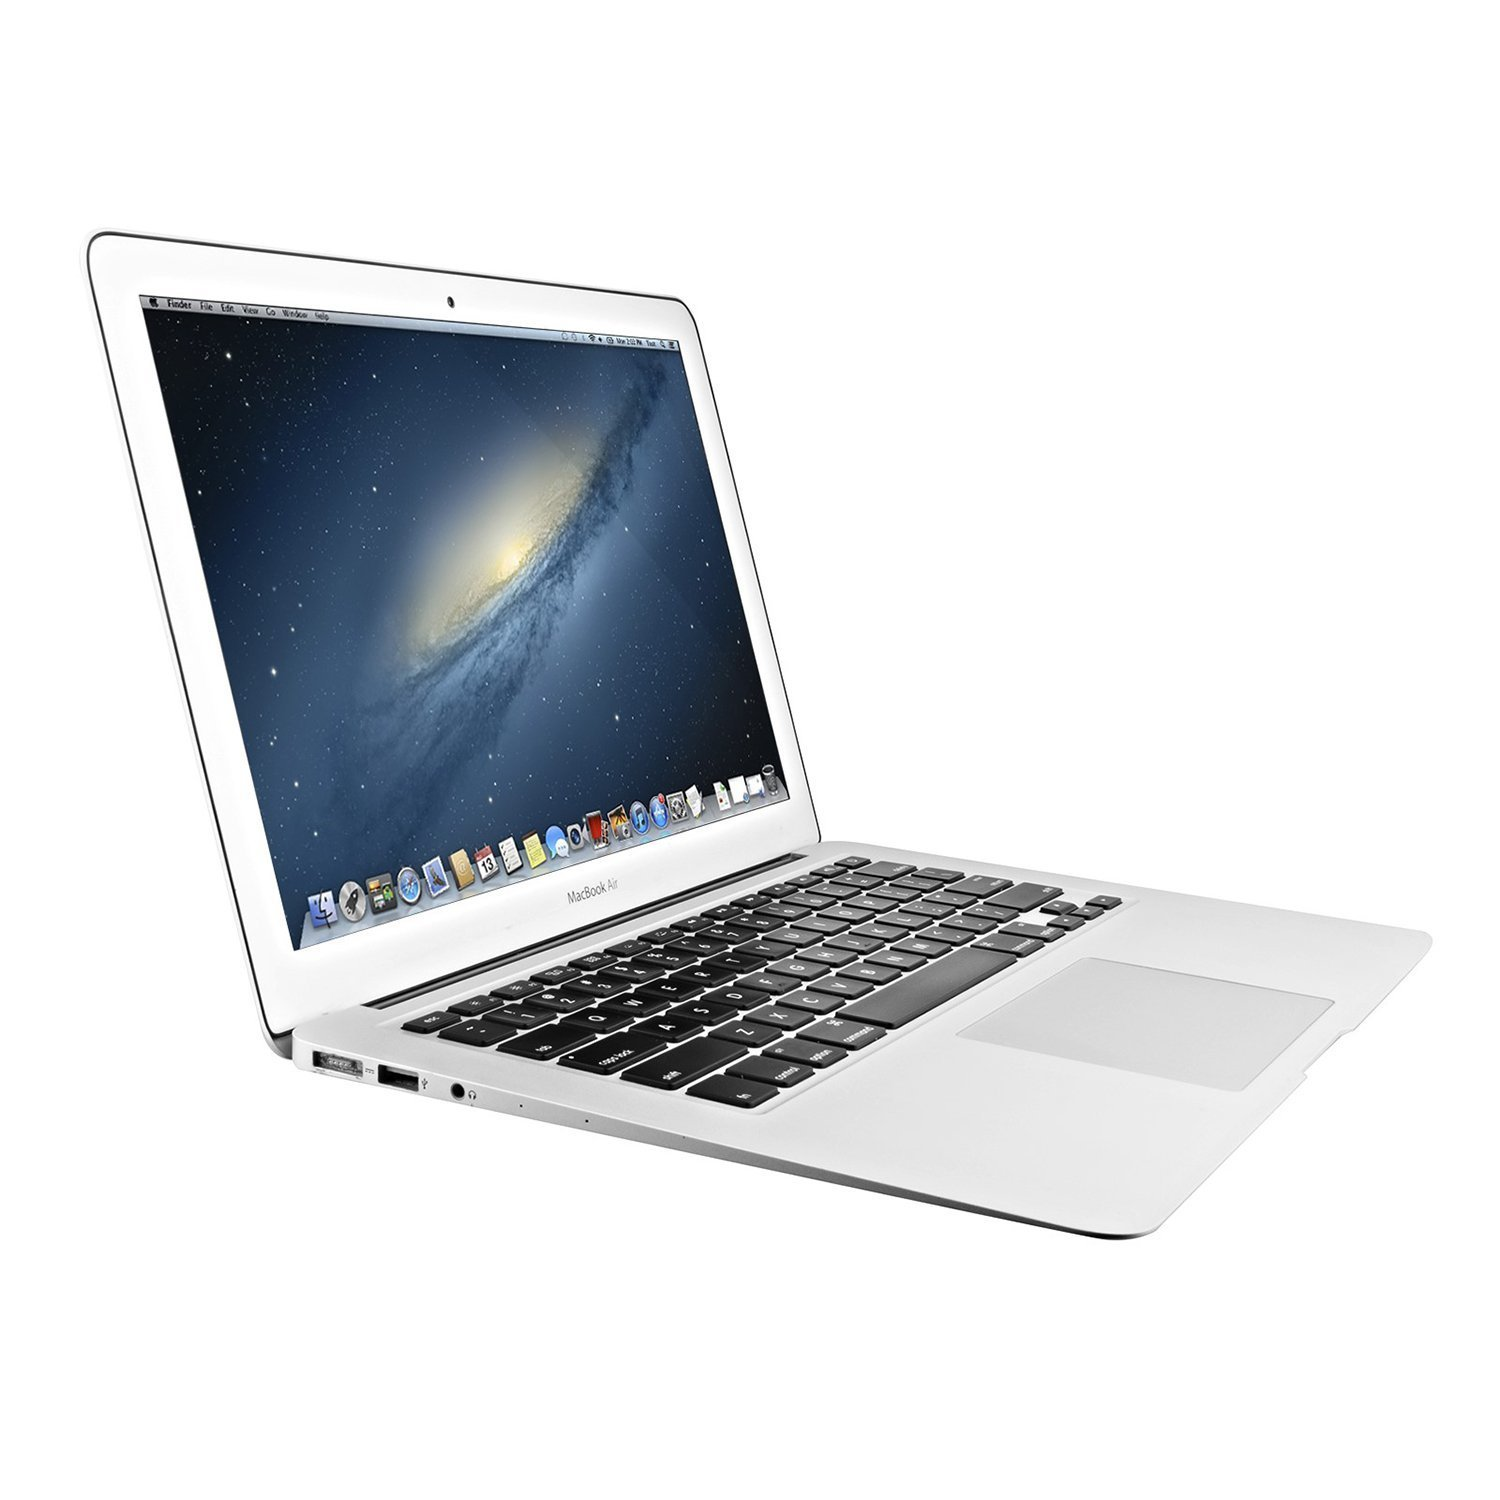 Learned Apple Macbook Air 13.3 Laptop Intel Core I5 1.40ghz 8gb Ram 256gb Ssd Md760ll/b Computers/tablets & Networking